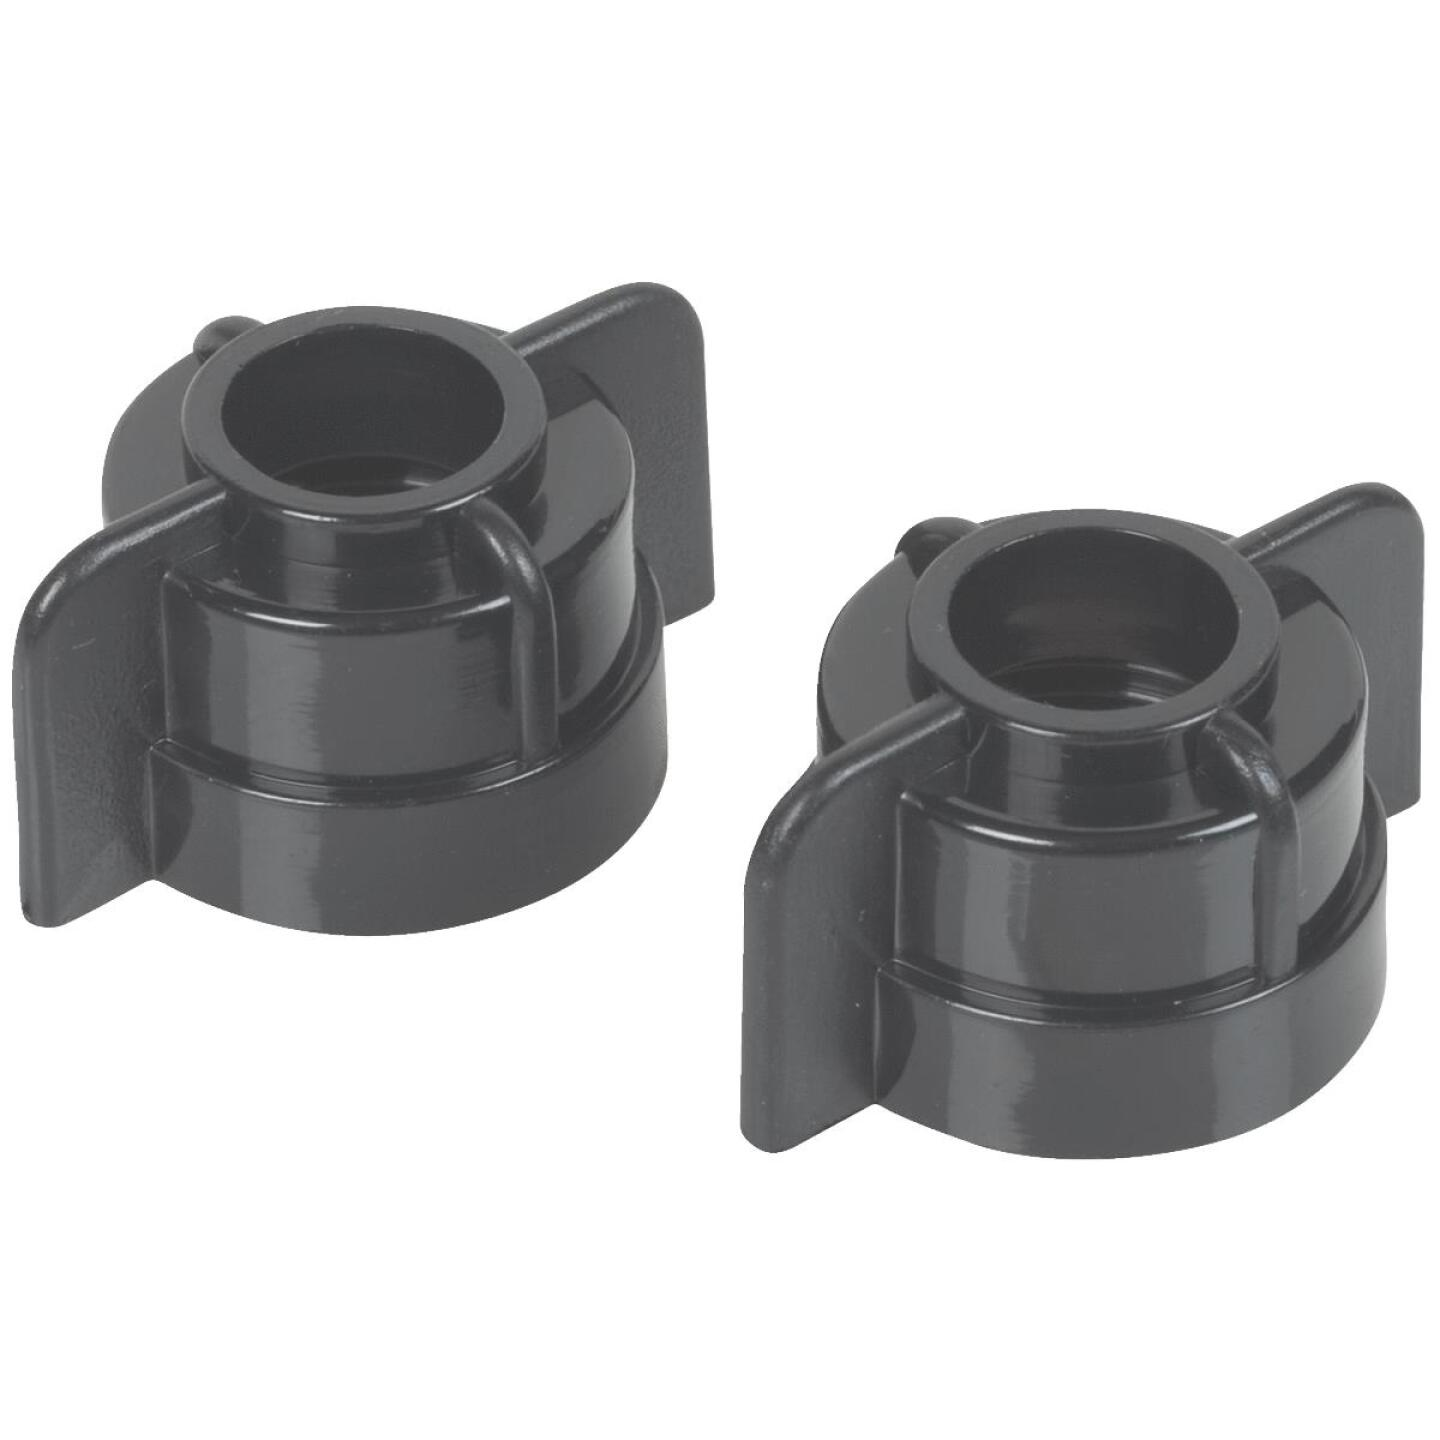 Do it 3/8 In. or 1/2 In. Plastic Basin Faucet Nut (2-Pack) Image 1